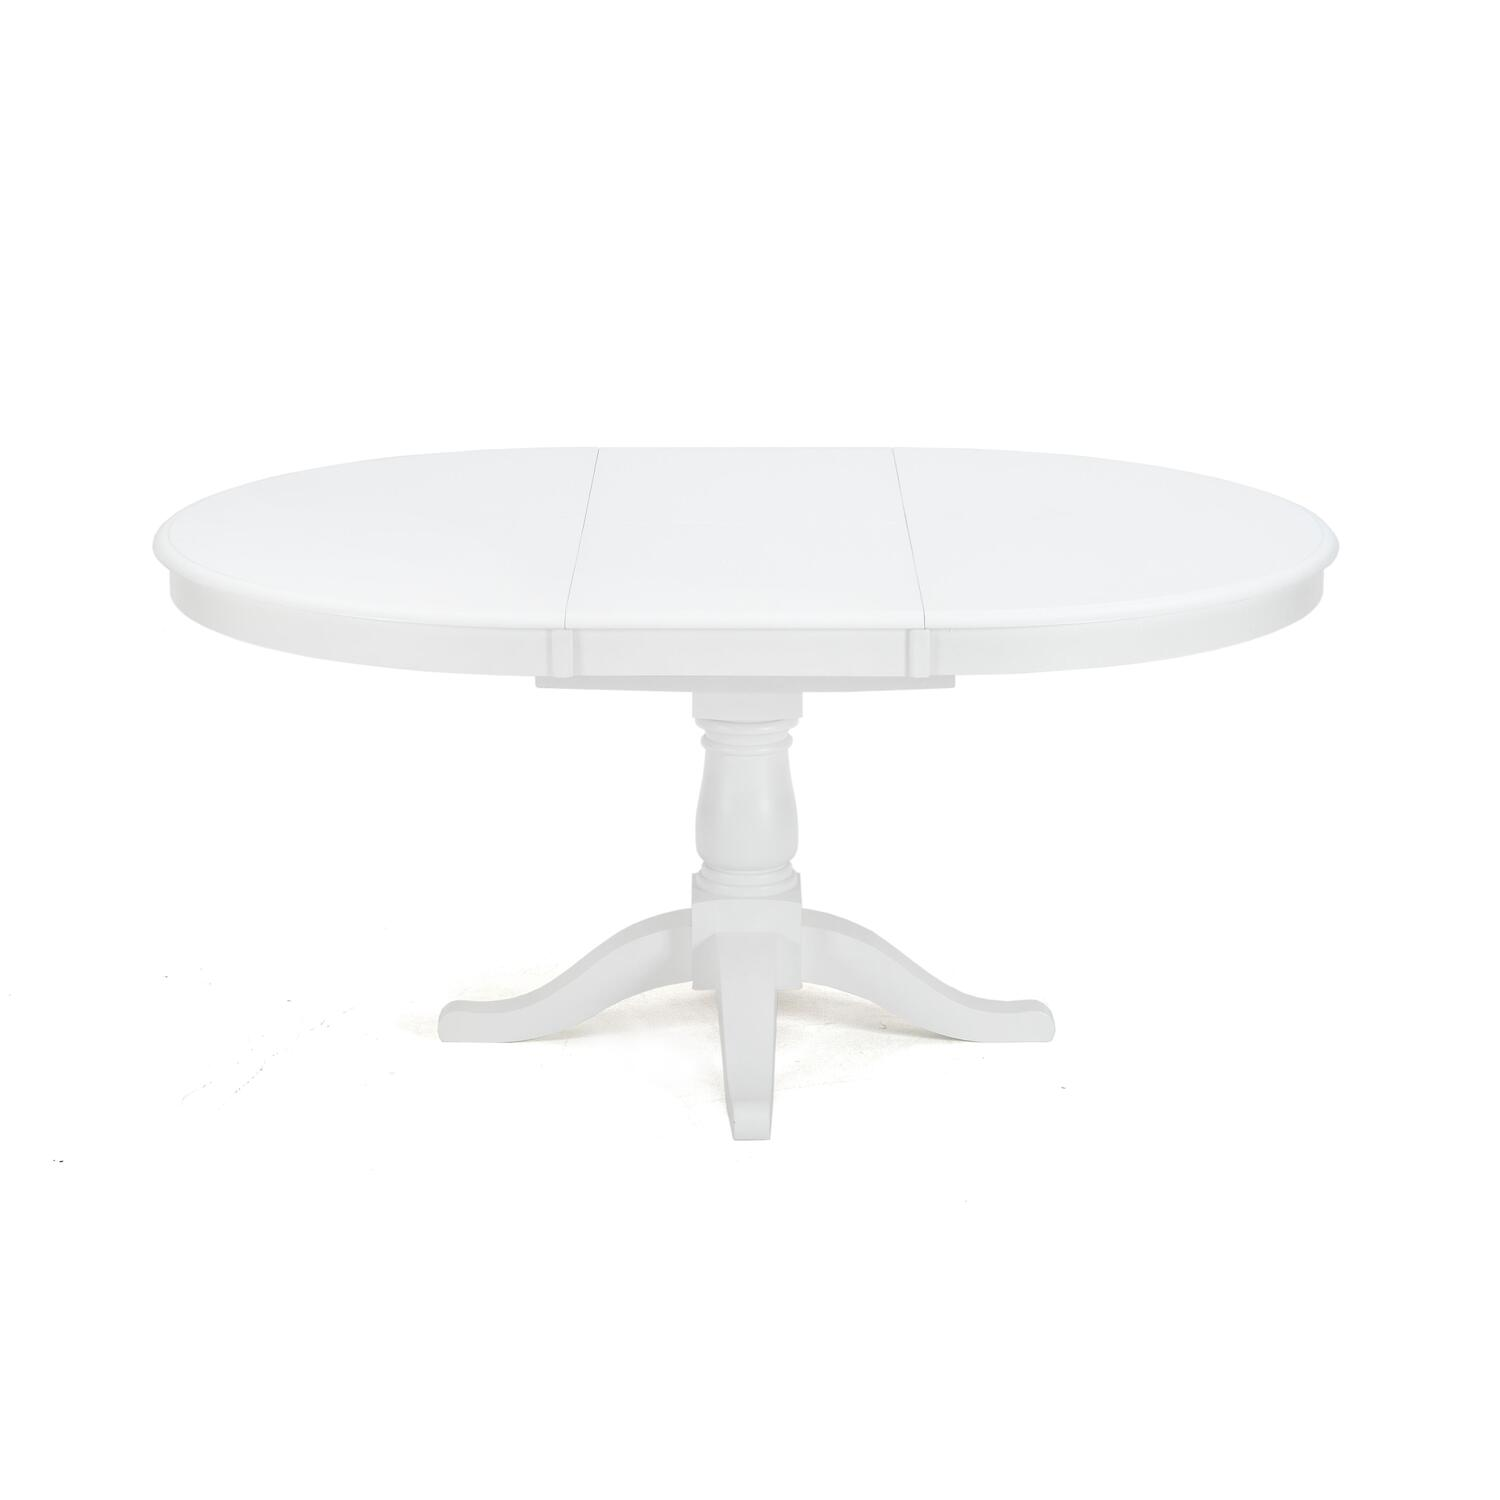 Jofran Casper White Finished Round To Oval Dining Table By Oj Commerce 662m